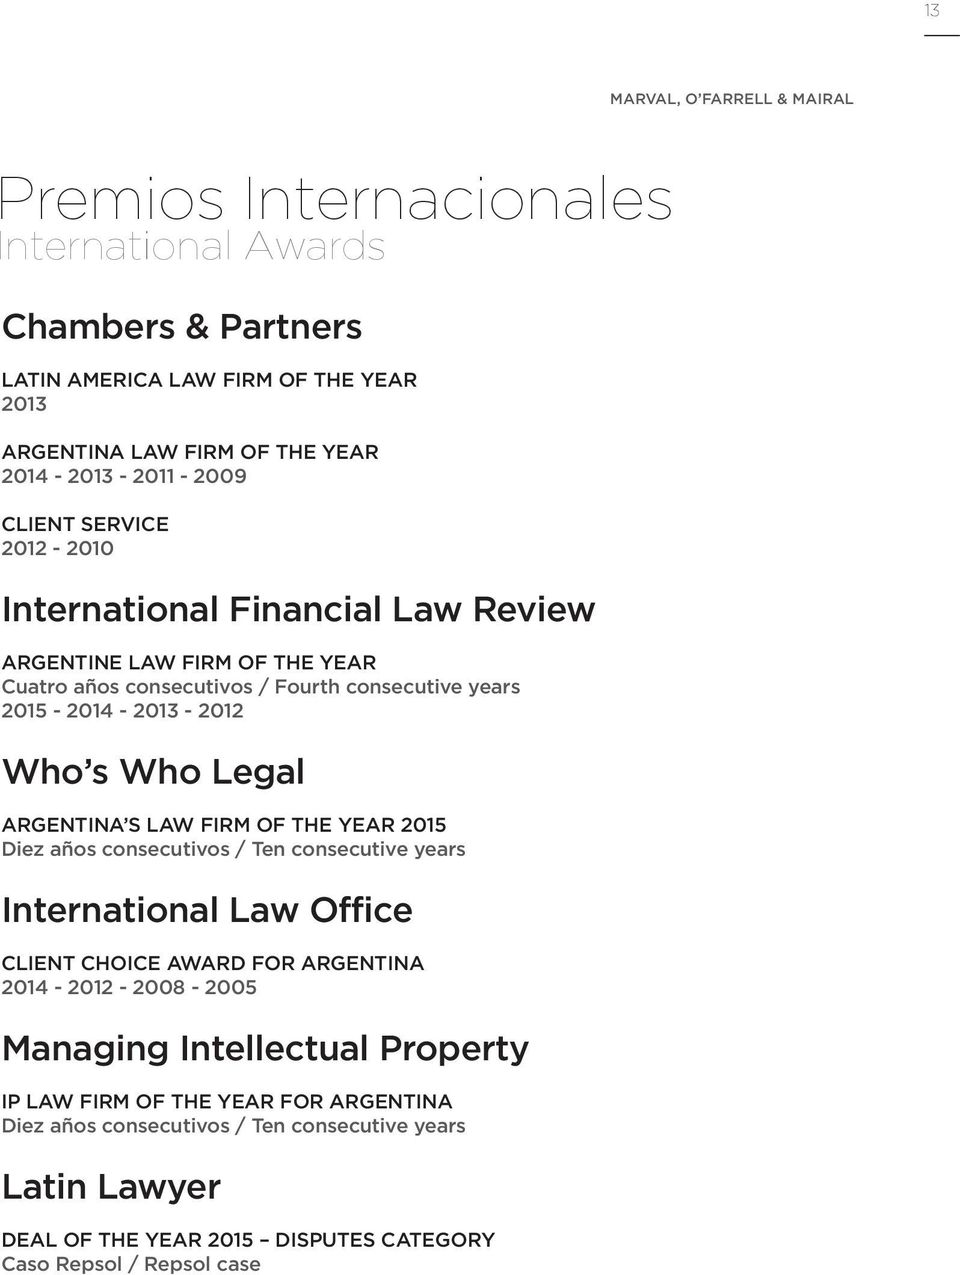 Who Legal ARGENTINA S LAW FIRM OF THE YEAR 2015 Diez años consecutivos / Ten consecutive years International Law Office CLIENT CHOICE AWARD FOR ARGENTINA 2014-2012 - 2008-2005